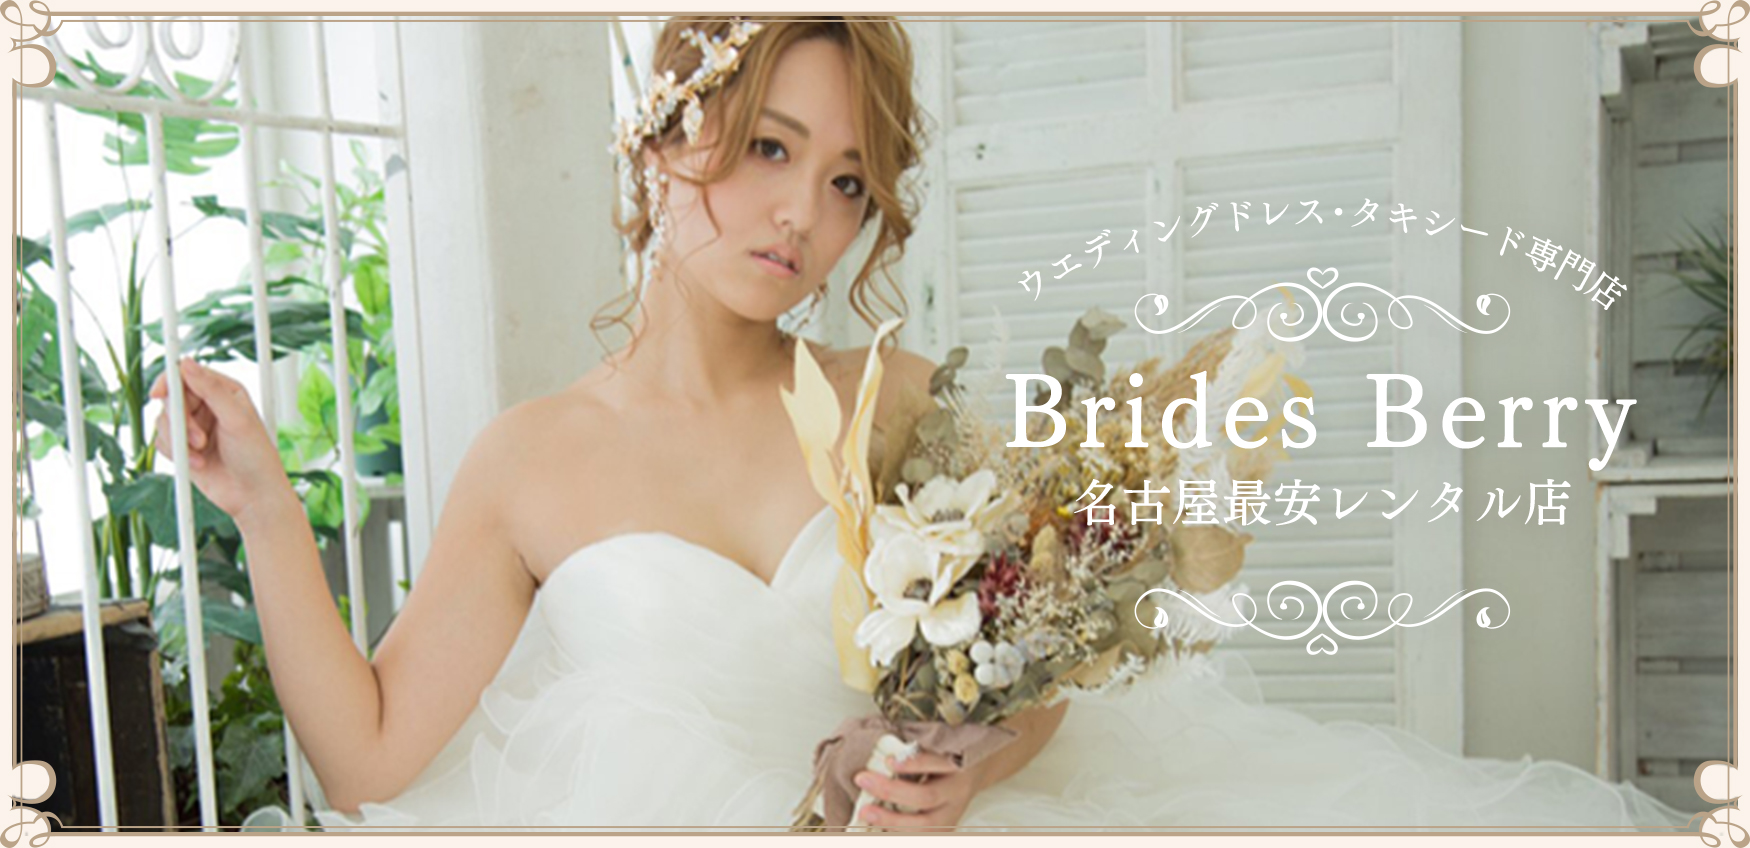 Brides Berry